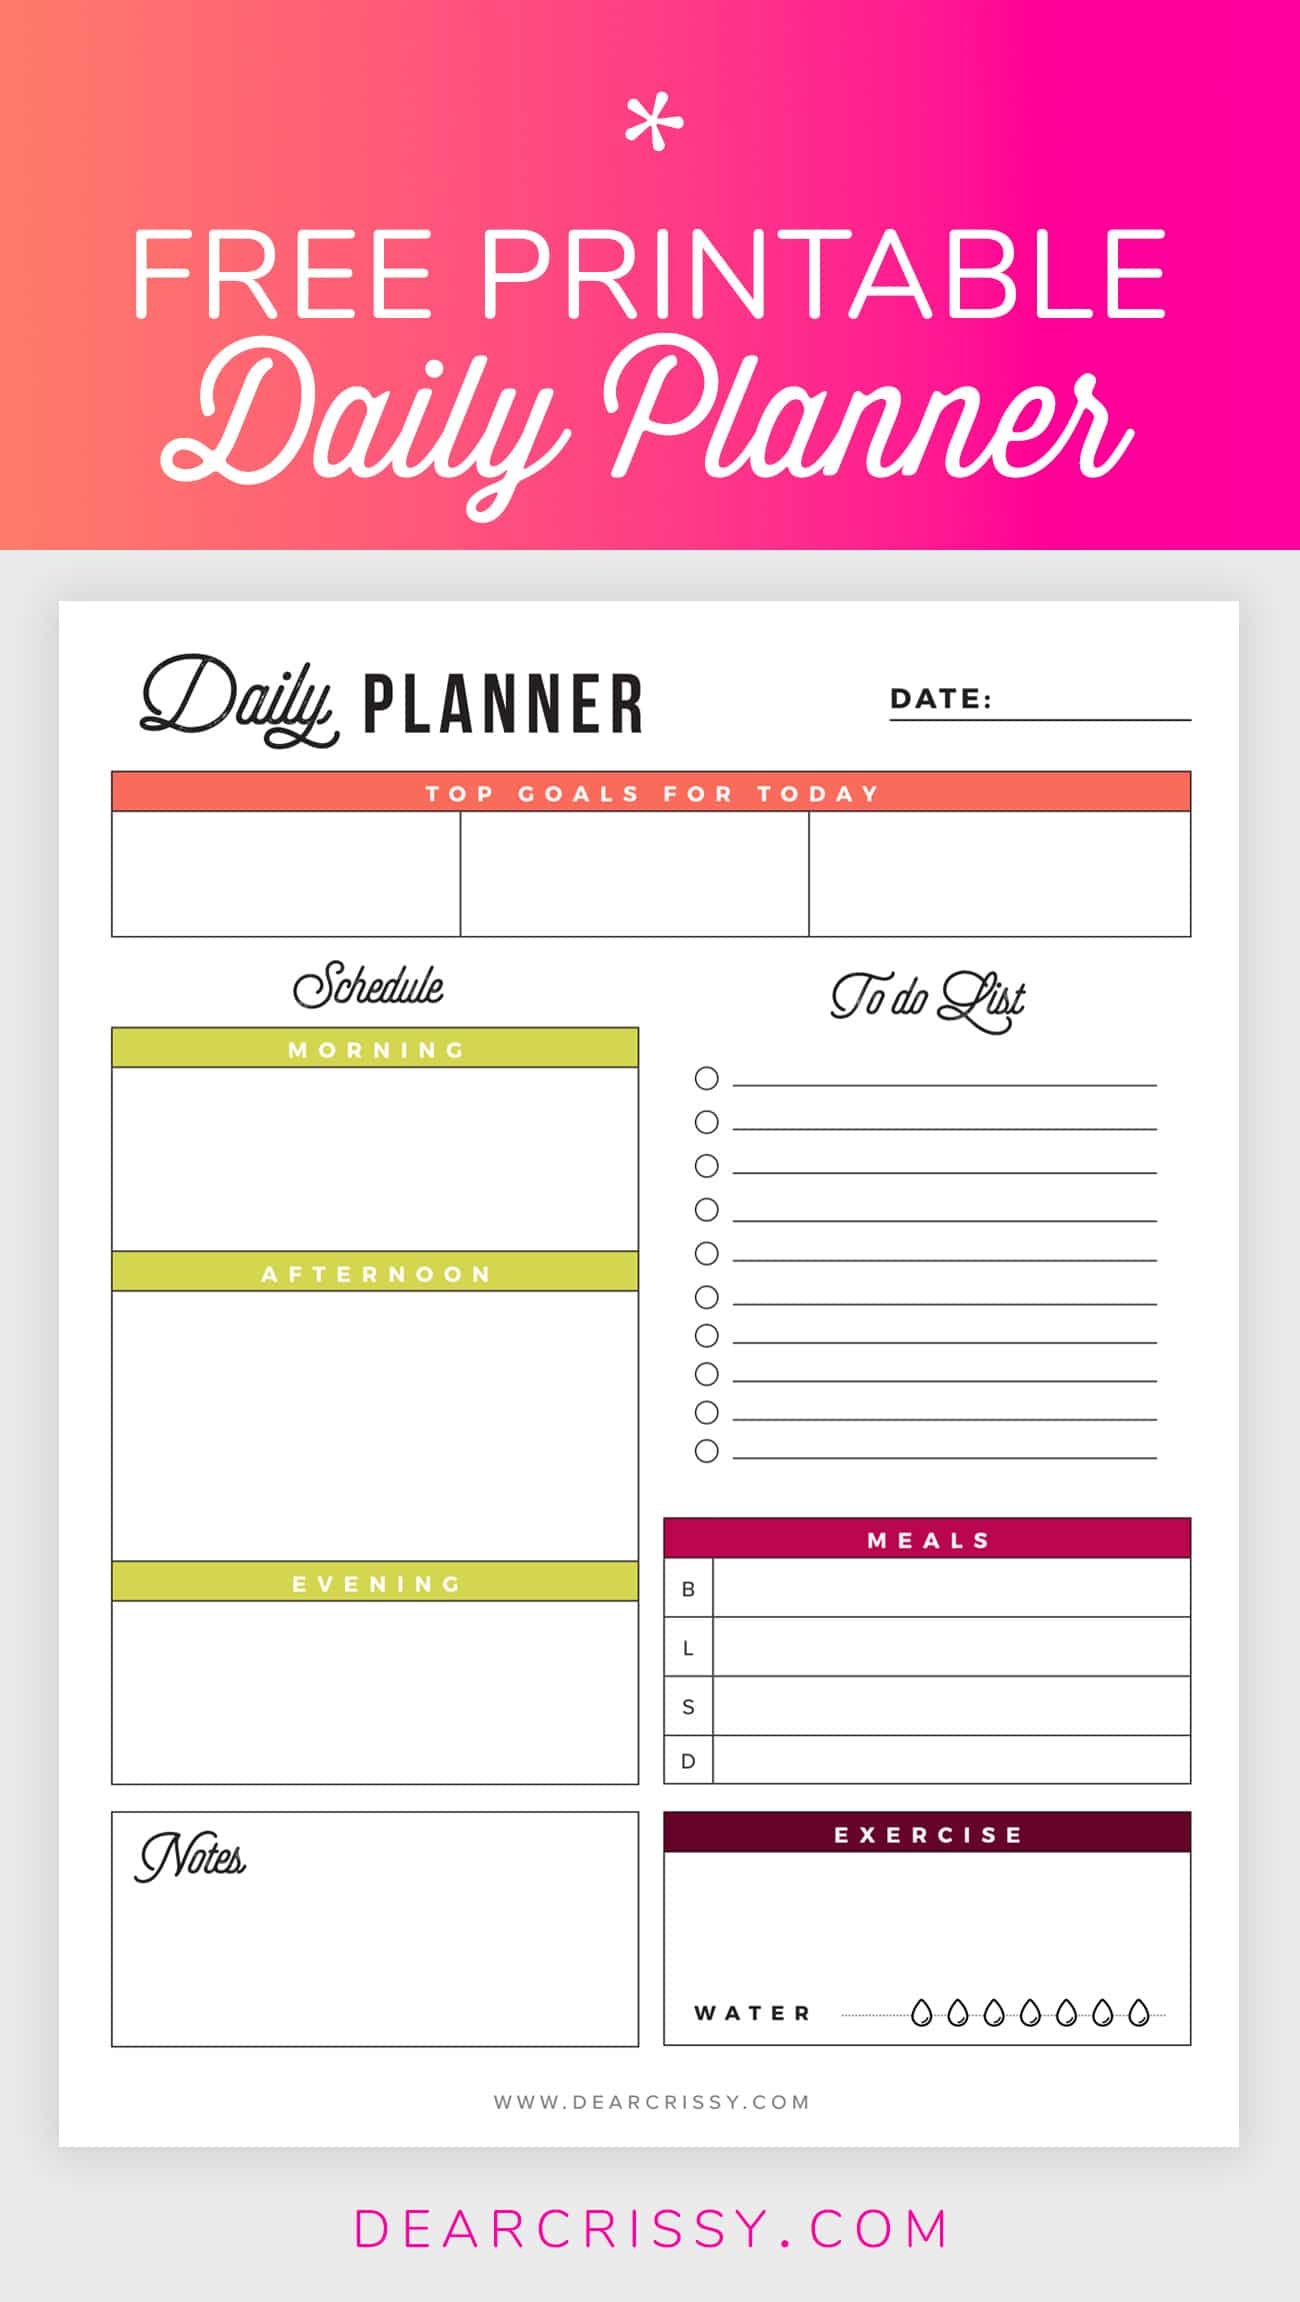 Free Printable Daily Planner Goals To Do Exercise Water Daily